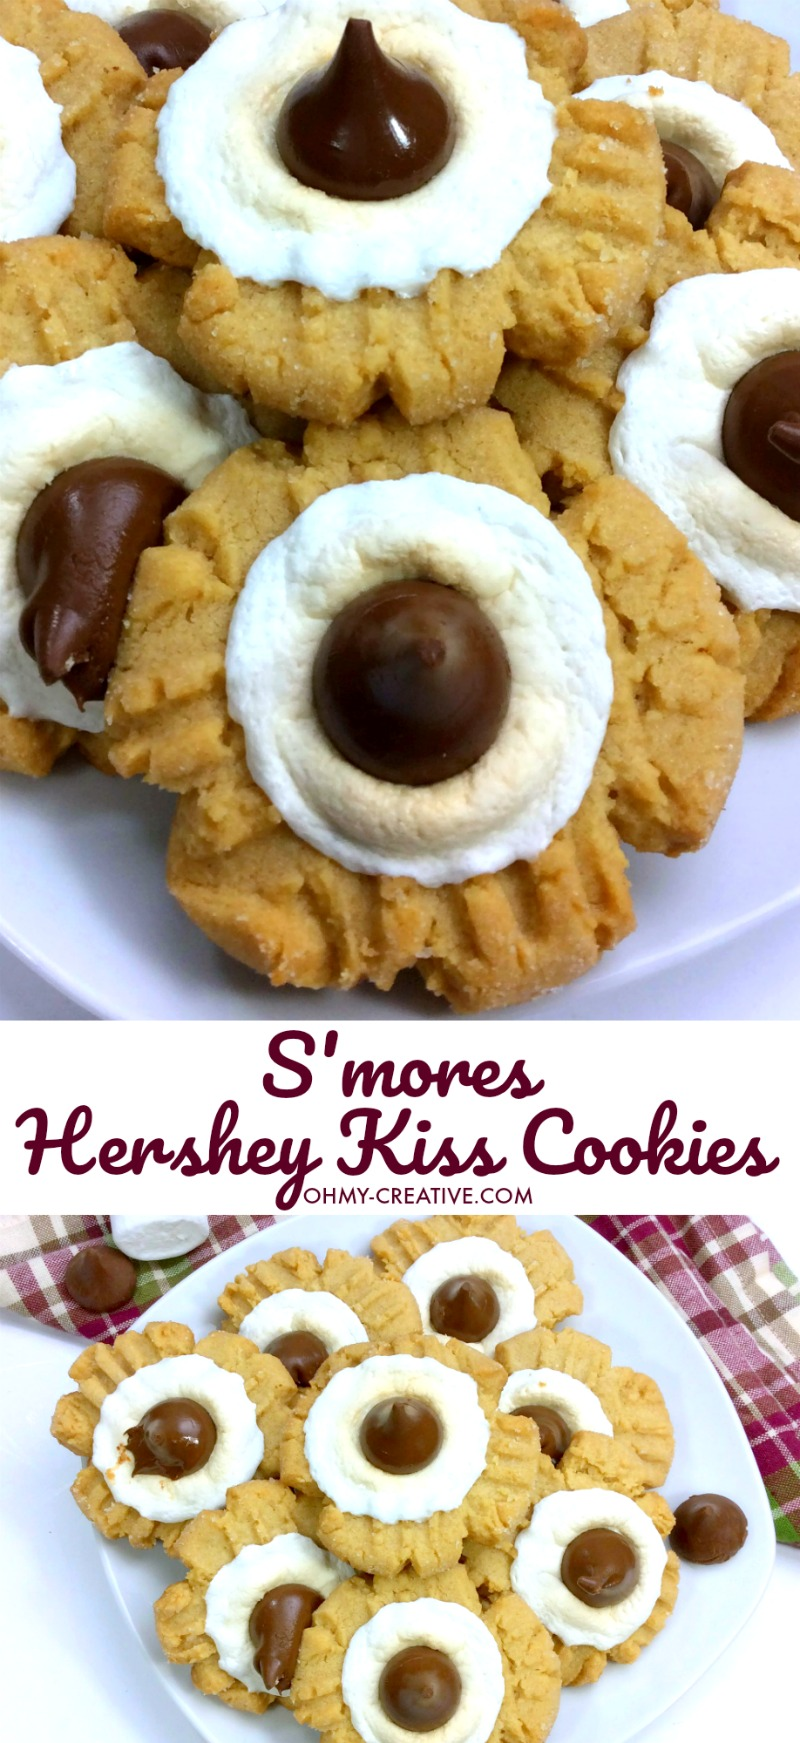 S'mores Hershey Kiss Cookies Recipe   OHMY-CREATIVE.COM   S'mores Cookies   Peanut Butter Blossom Cookies   Smores Dessert   Marshmallow Cookies   Peanut Butter Kisses